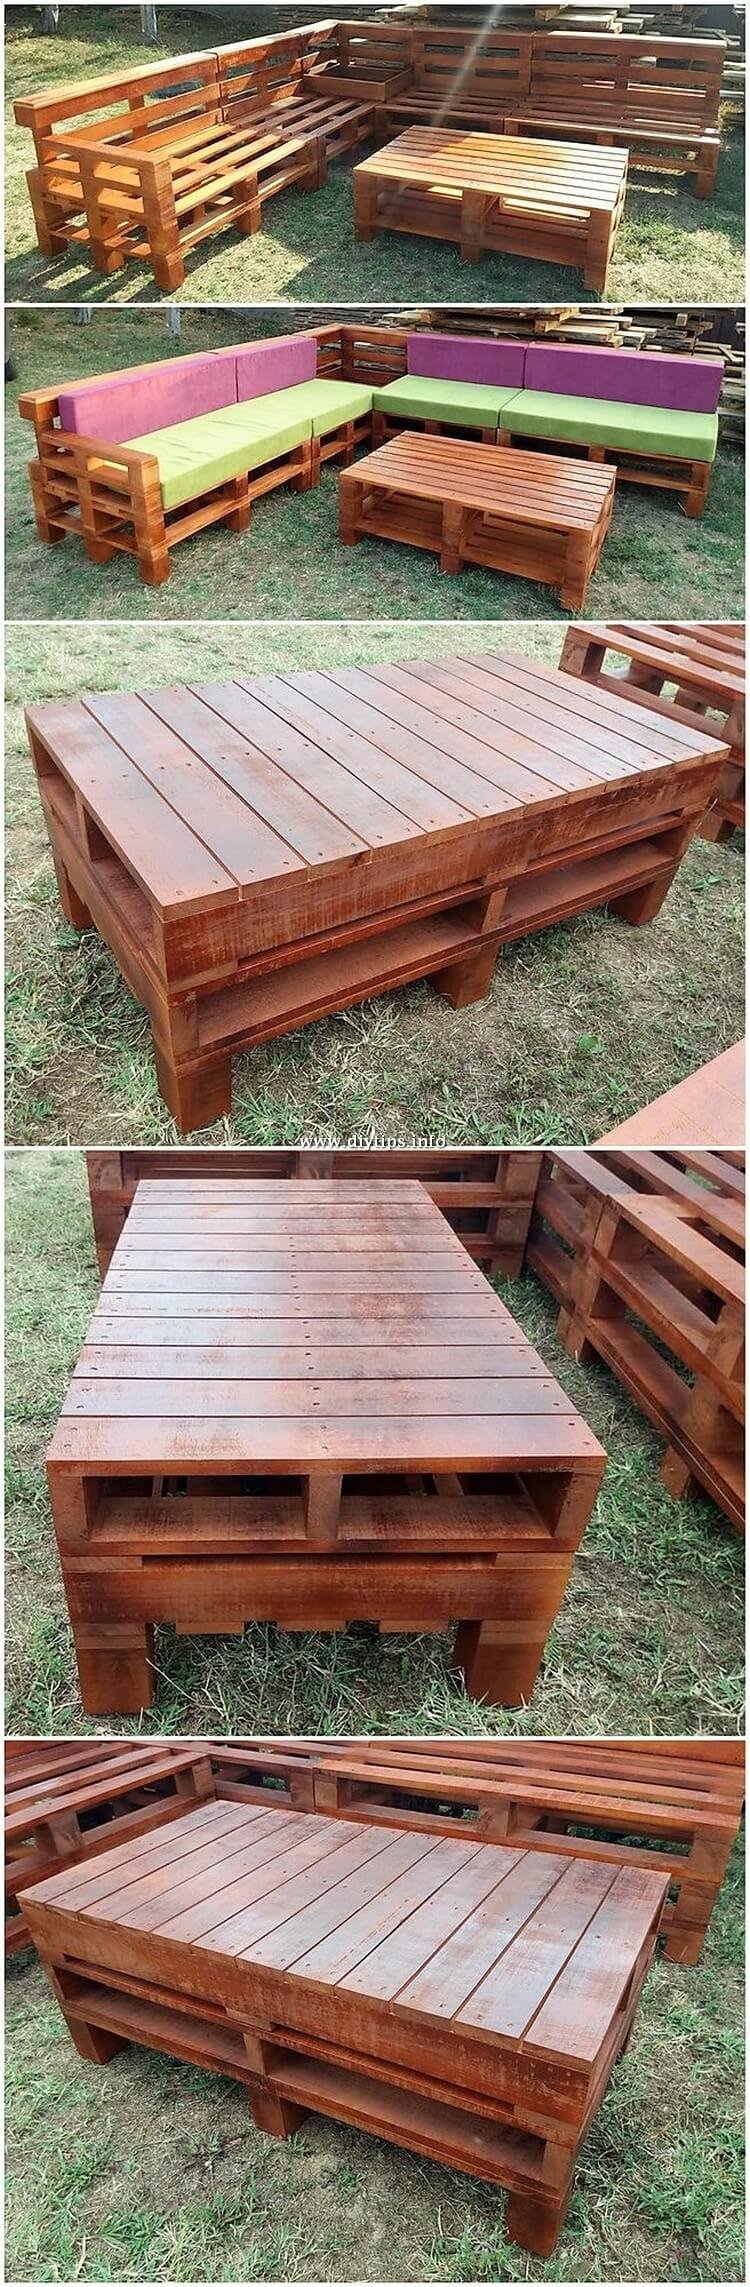 Garden Pallet Couch and Table